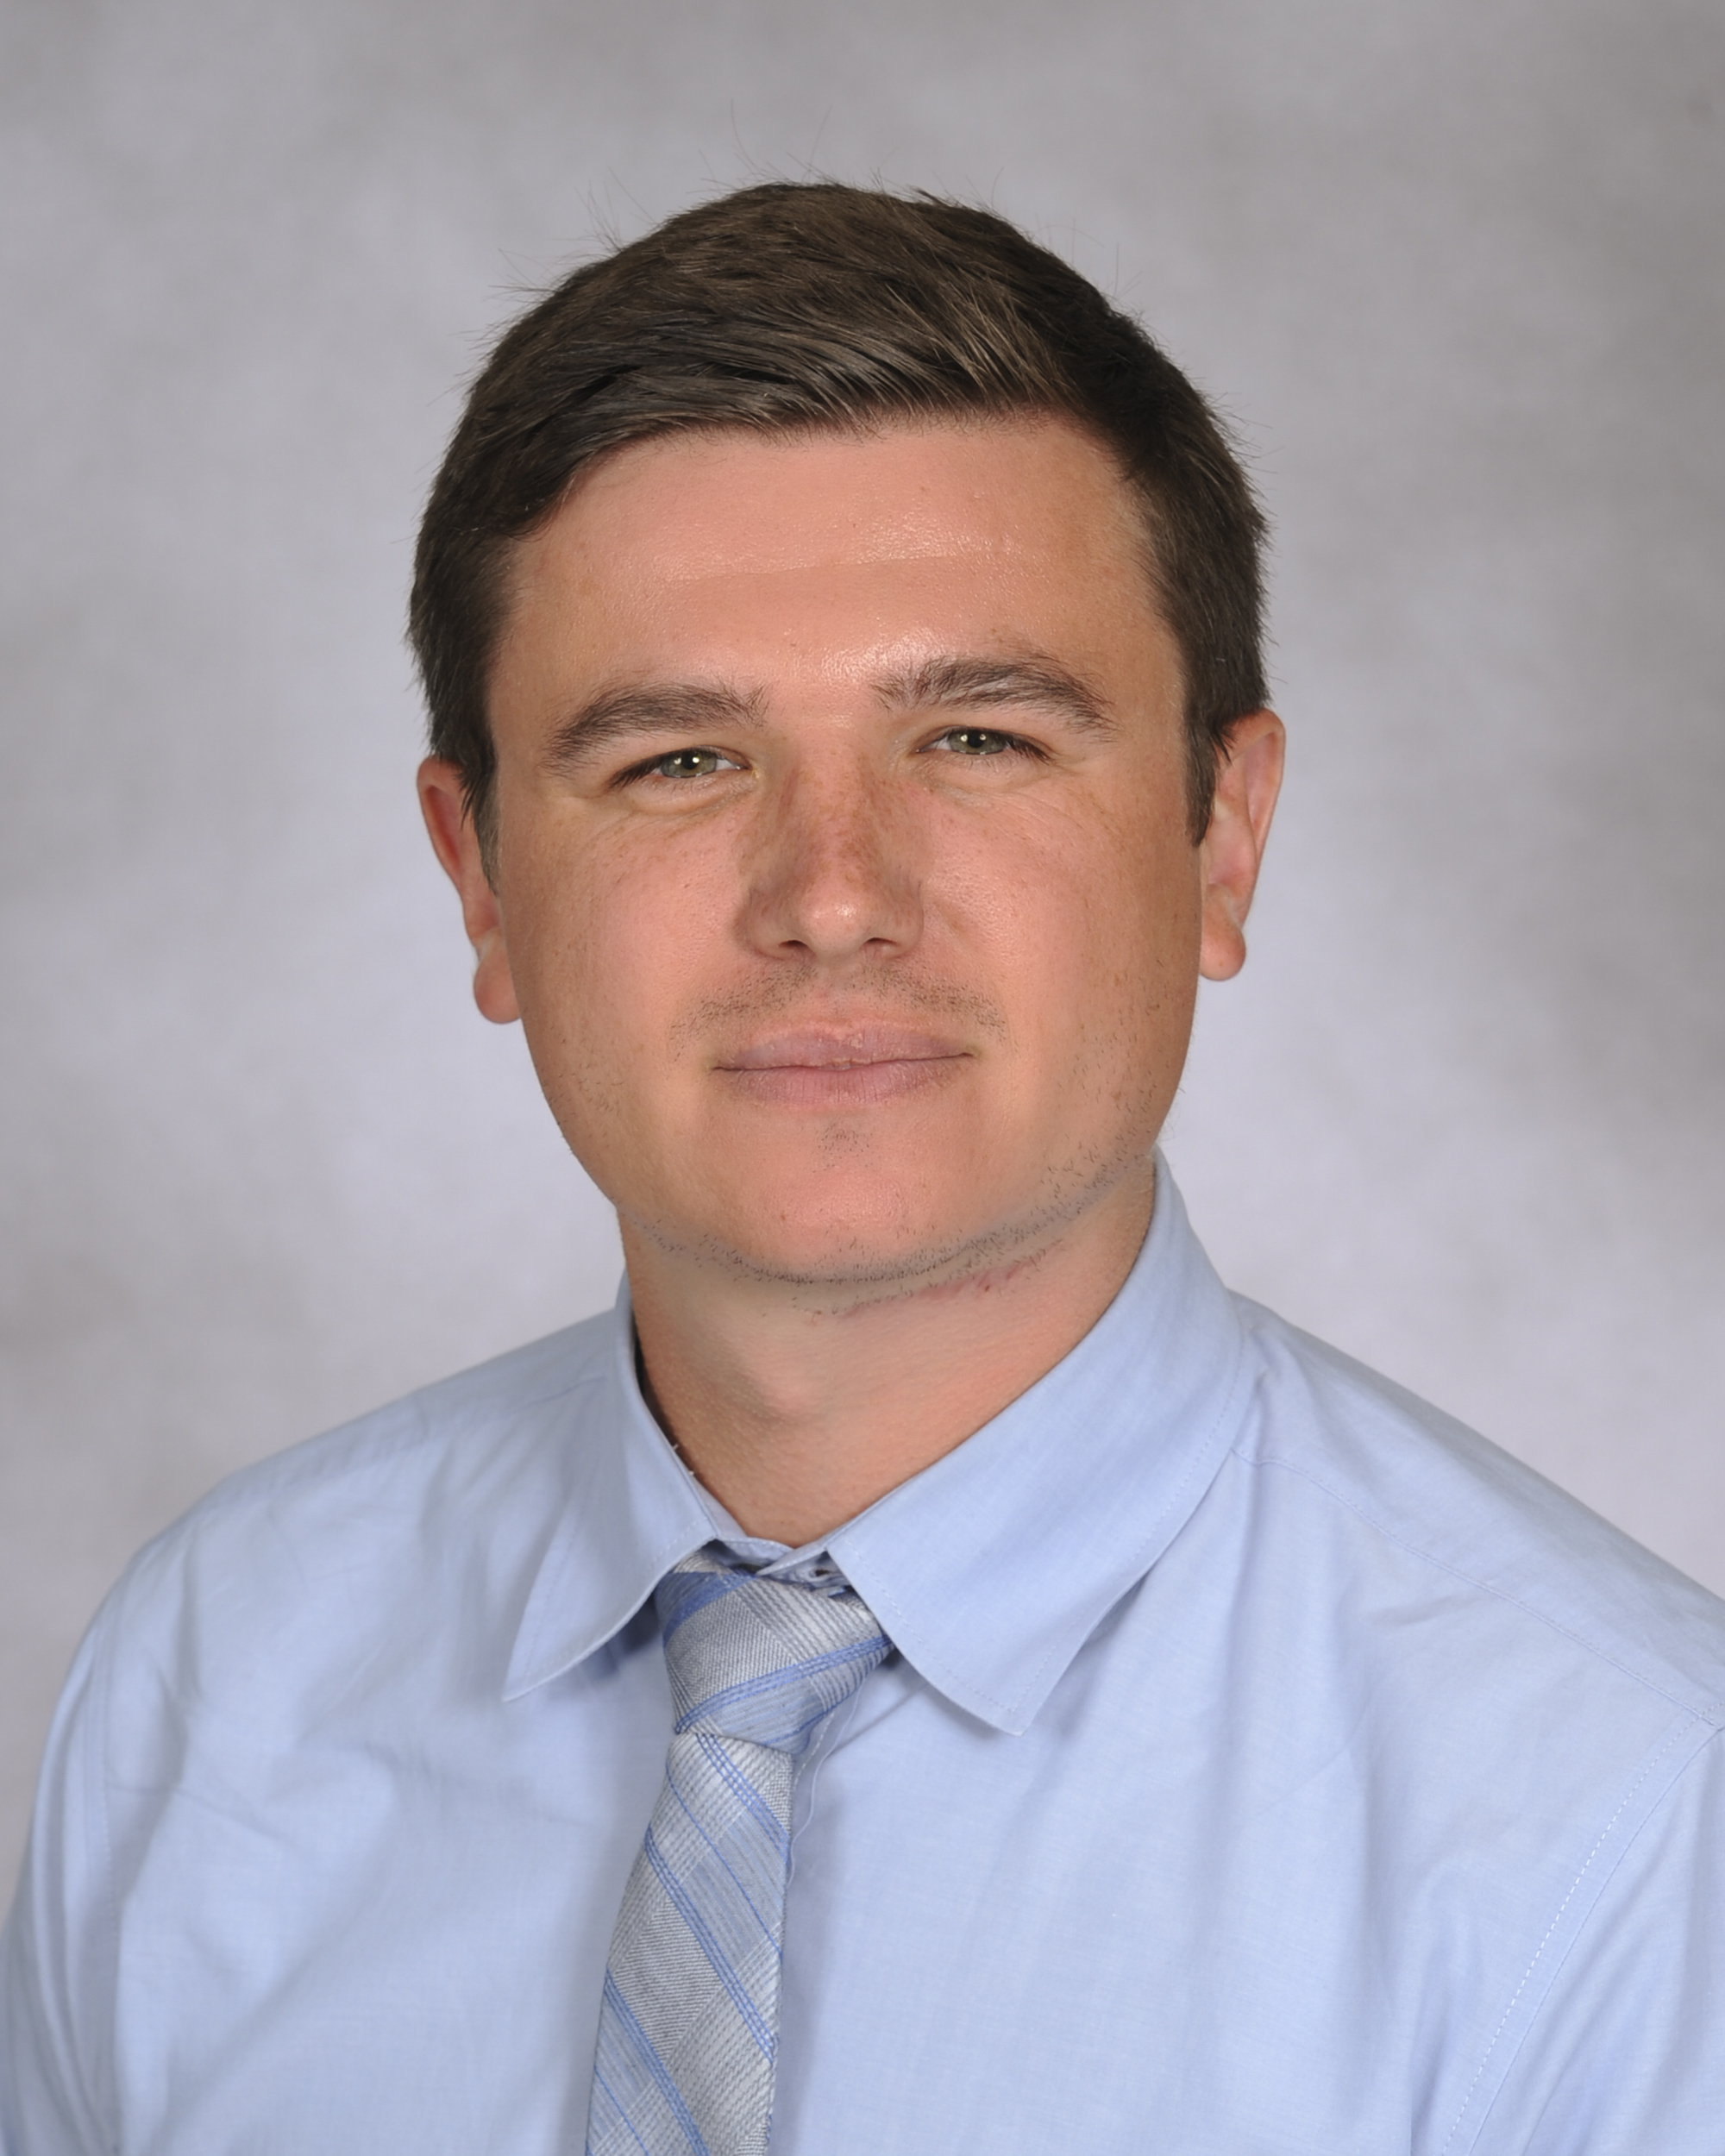 Lubomyr Boris - Hometown: Chicago, ILEducation: BS, Biology--Loyola University of Chicago; DO--Marian University of Osteopathic MedicinePersonal Interests: Sports, movies, travelingPublications: Many patients continue using proton pump inhibitors after negative results from tests for reflux disease. Clinical Gastroenterology and Hepatology. 2012, Jun; Gawron AJ, Rothe J, Fought AJ, Fareeduddin A, Toto E, Boris L, Kahrilas PJ, Pandolfino JE.Increased risk for persistent intestinal metaplasia in patients with Barrett's esophagus and uncontrolled reflux exposure before radiofrequency ablation. Gastroenterology. 2012, Sep; Krishnan K, Pandolfino JE, Kahrilas PJ, Keefer L, Boris L, Komanduri S.Refining the criterion for an abnormal Integrated Relaxation Pressure in esophageal pressure topography based on the pattern of esophageal contractility using a classification and regression tree model. Neurogastroenterology & Motility. 2012, Aug; Lin Z, Kahrilas PJ, Roman S, Boris L, Carlson D, Pandolfino JE.Regional variation in distal esophagus distensibility assessed using the functional luminal imaging probe (FLIP). Neurogastroenterology & Motility. 2013, Nov; Lin Z, Nicodème F, Boris L, Lin CY, Kahrilas PJ, Pandolfino JE.Distal Esophageal Spasm in High-Resolution Esophageal Pressure Topography: Defining Clinical Phenotypes. Gastroenterology. 2011, Aug; Pandolfino JE, Roman S, Carlson D, Luger D, Bidari K, Boris L, Kwiatek MA, Kahrilas PJ.Distensibility of the esophagogastric junction assessed with the functional lumen imaging probe (FLIP™) in achalasia patients. Neurogastroenterology & Motility. 2013, Jun; Pandolfino JE, de Ruigh A, Nicodème F, Xiao Y, Boris L, Kahrilas PJ.High-resolution manometry studies are frequently imperfect but usually still interpretable. Clinical Gastroenterology and Hepatology. 2011, Dec; Roman S, Kahrilas PJ, Boris L, Bidari K, Luger D, Pandolfino JE.Phenotypes and clinical context of hypercontractility in high-resolution esophageal pressure topogr